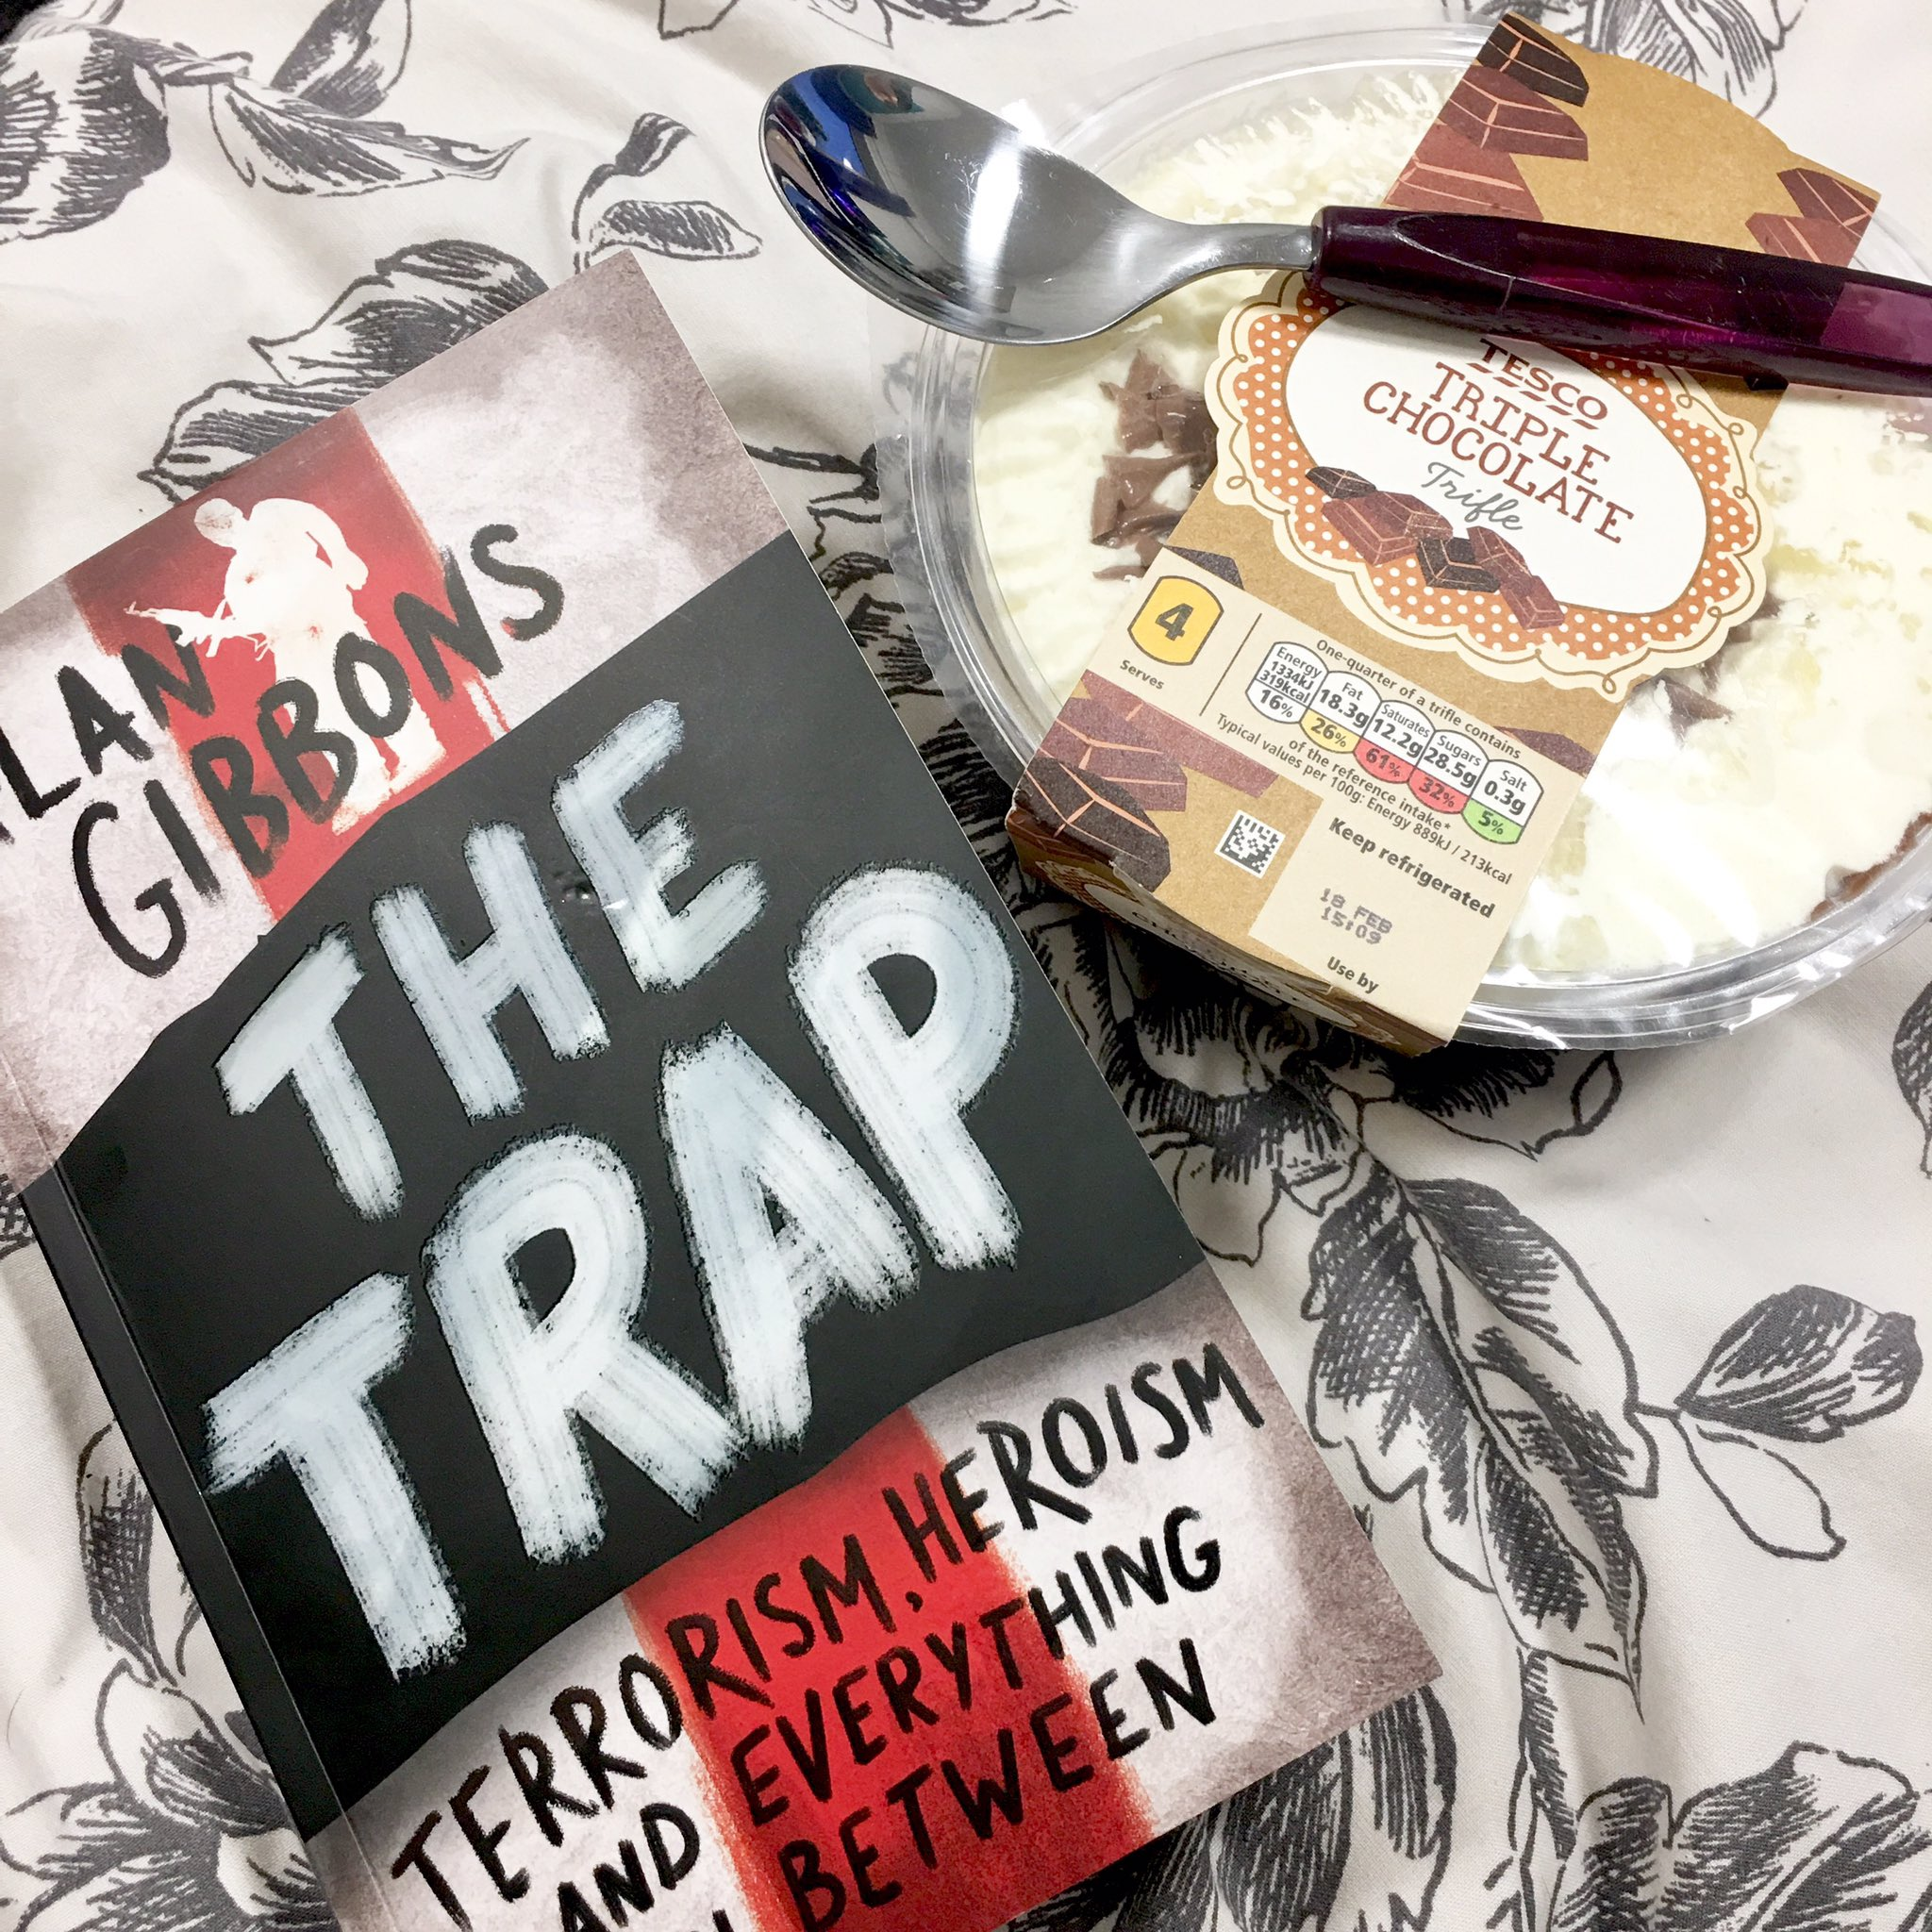 The Trap Alan Gibbons Book Review - Tesco Triple Chocolate Trifle